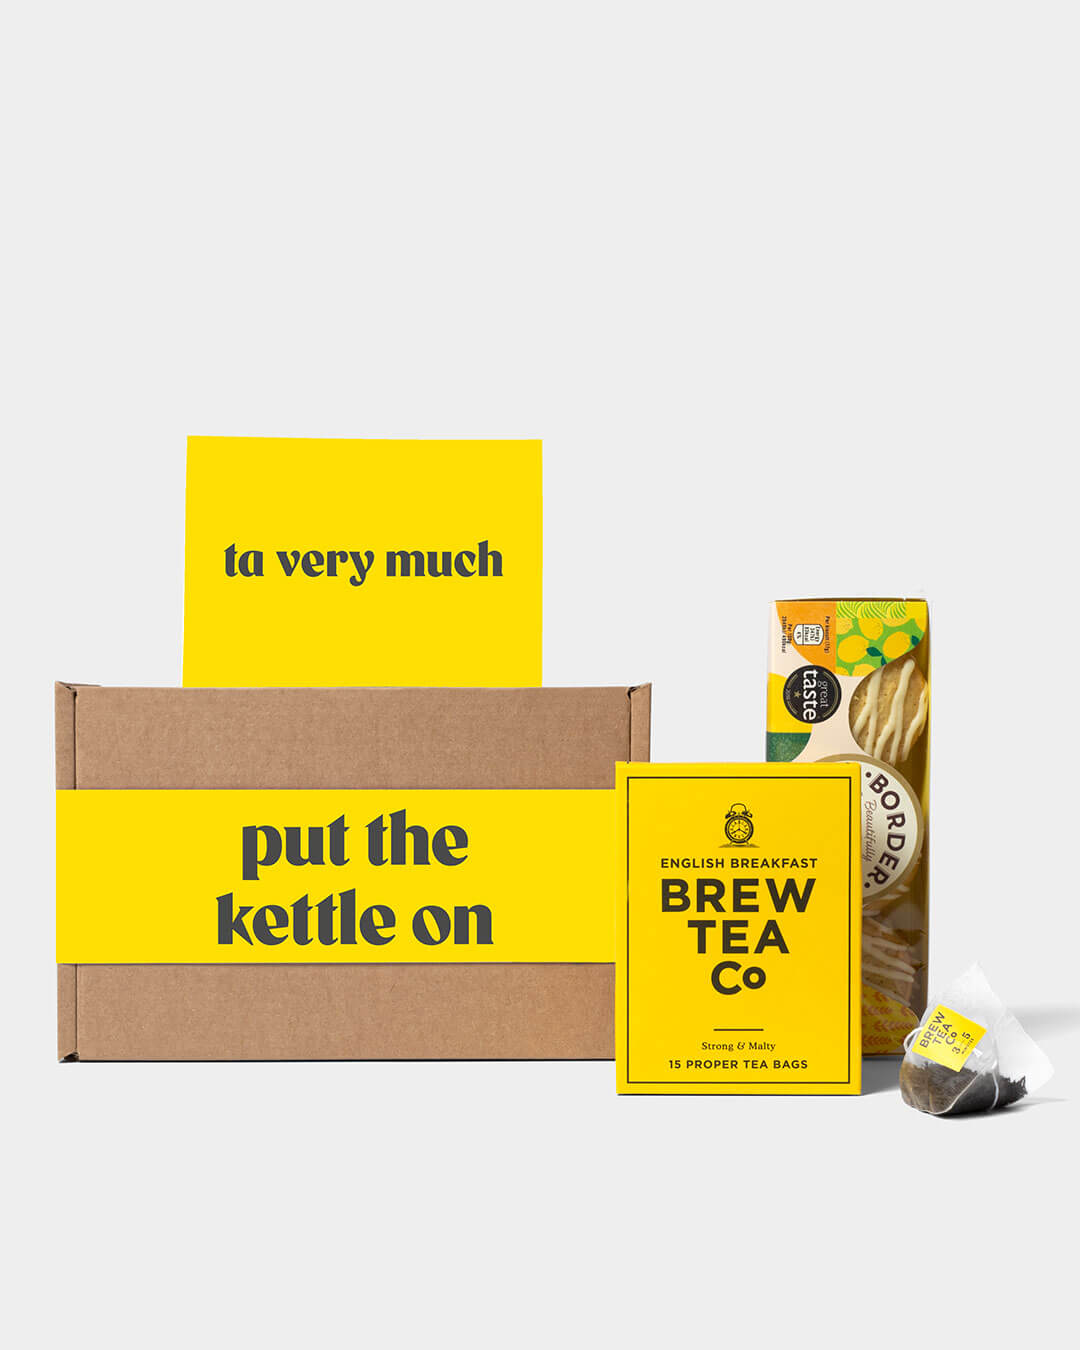 tea gift box and contents including Brew Tea Co tea bags and Border Biscuits